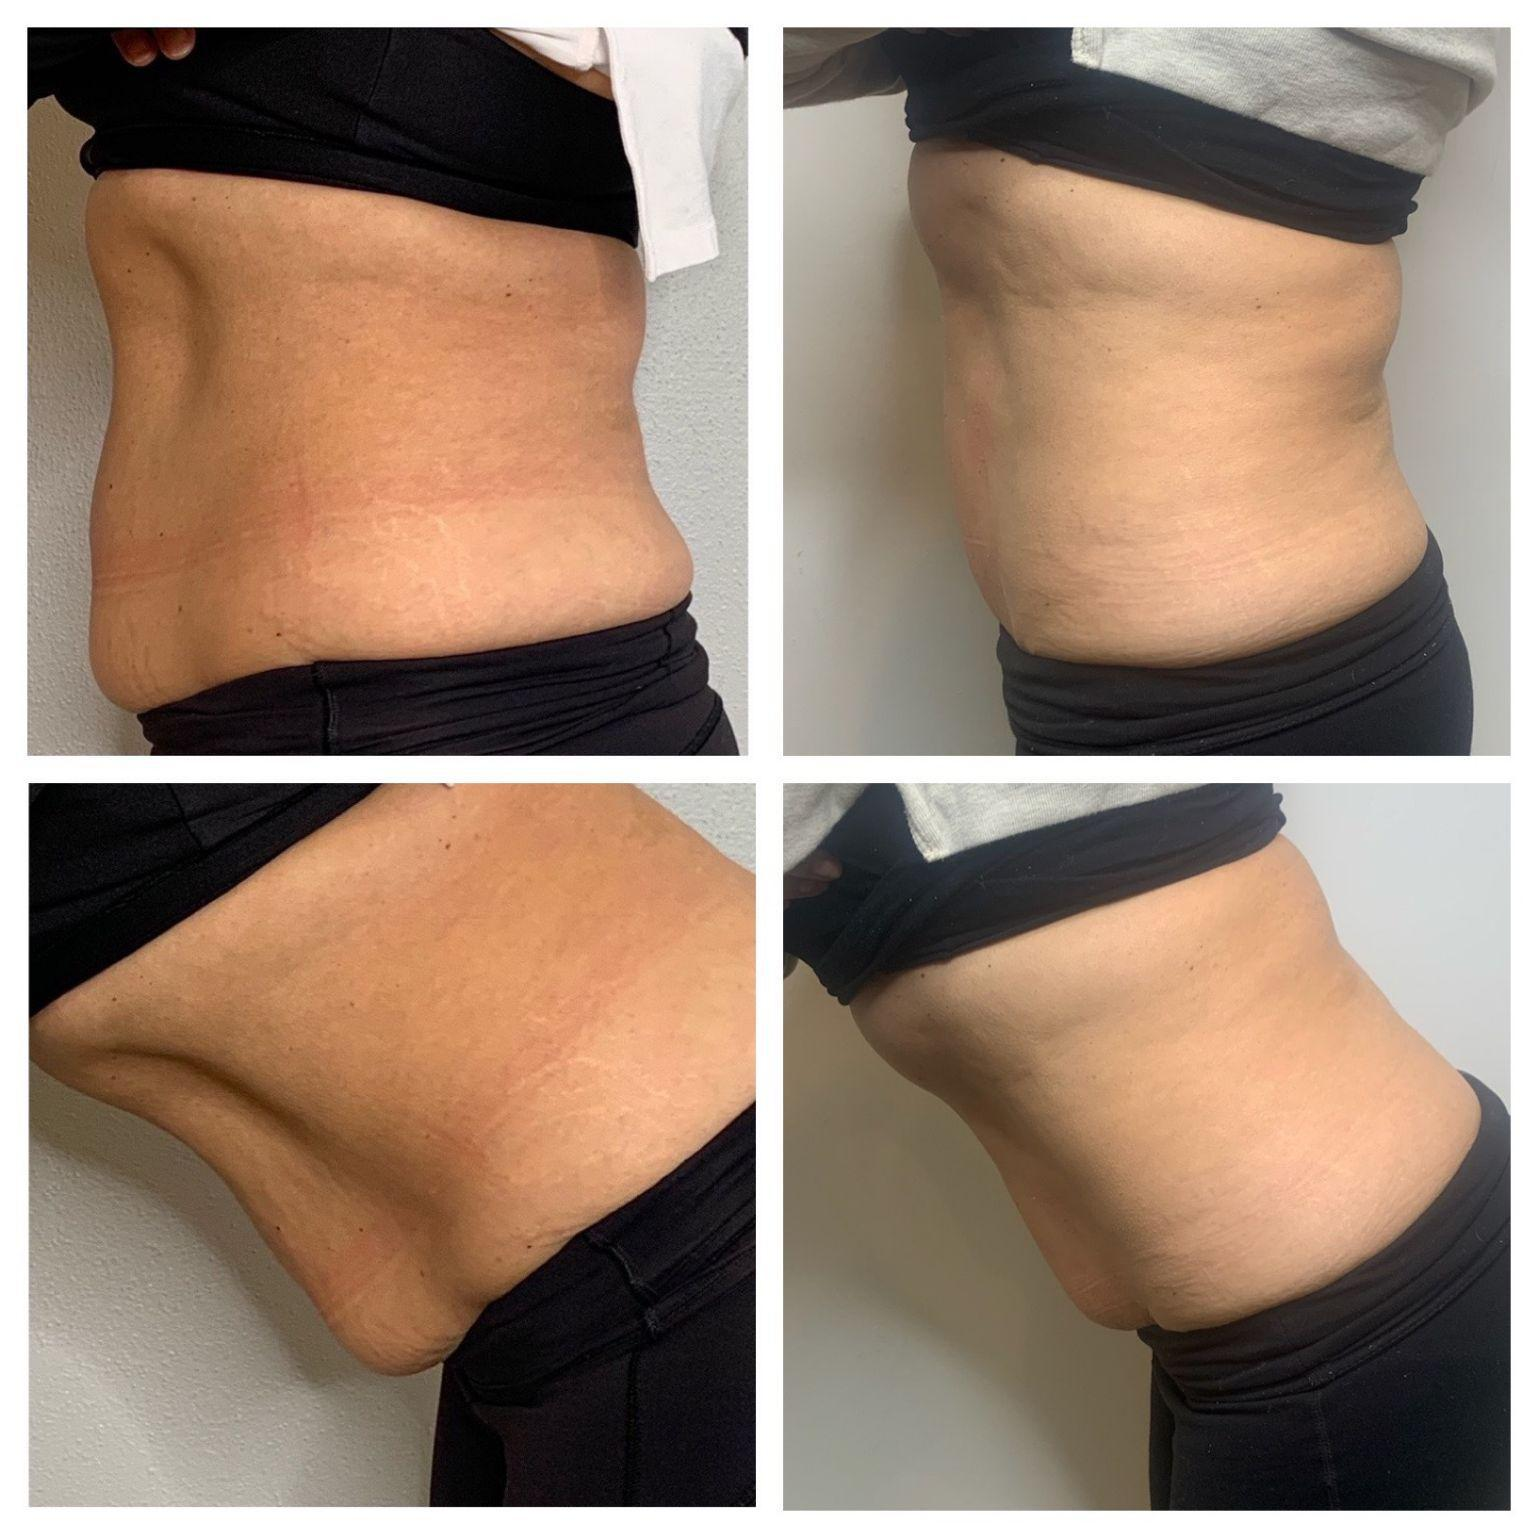 Gallery image about Body Contouring Before & After - gallery